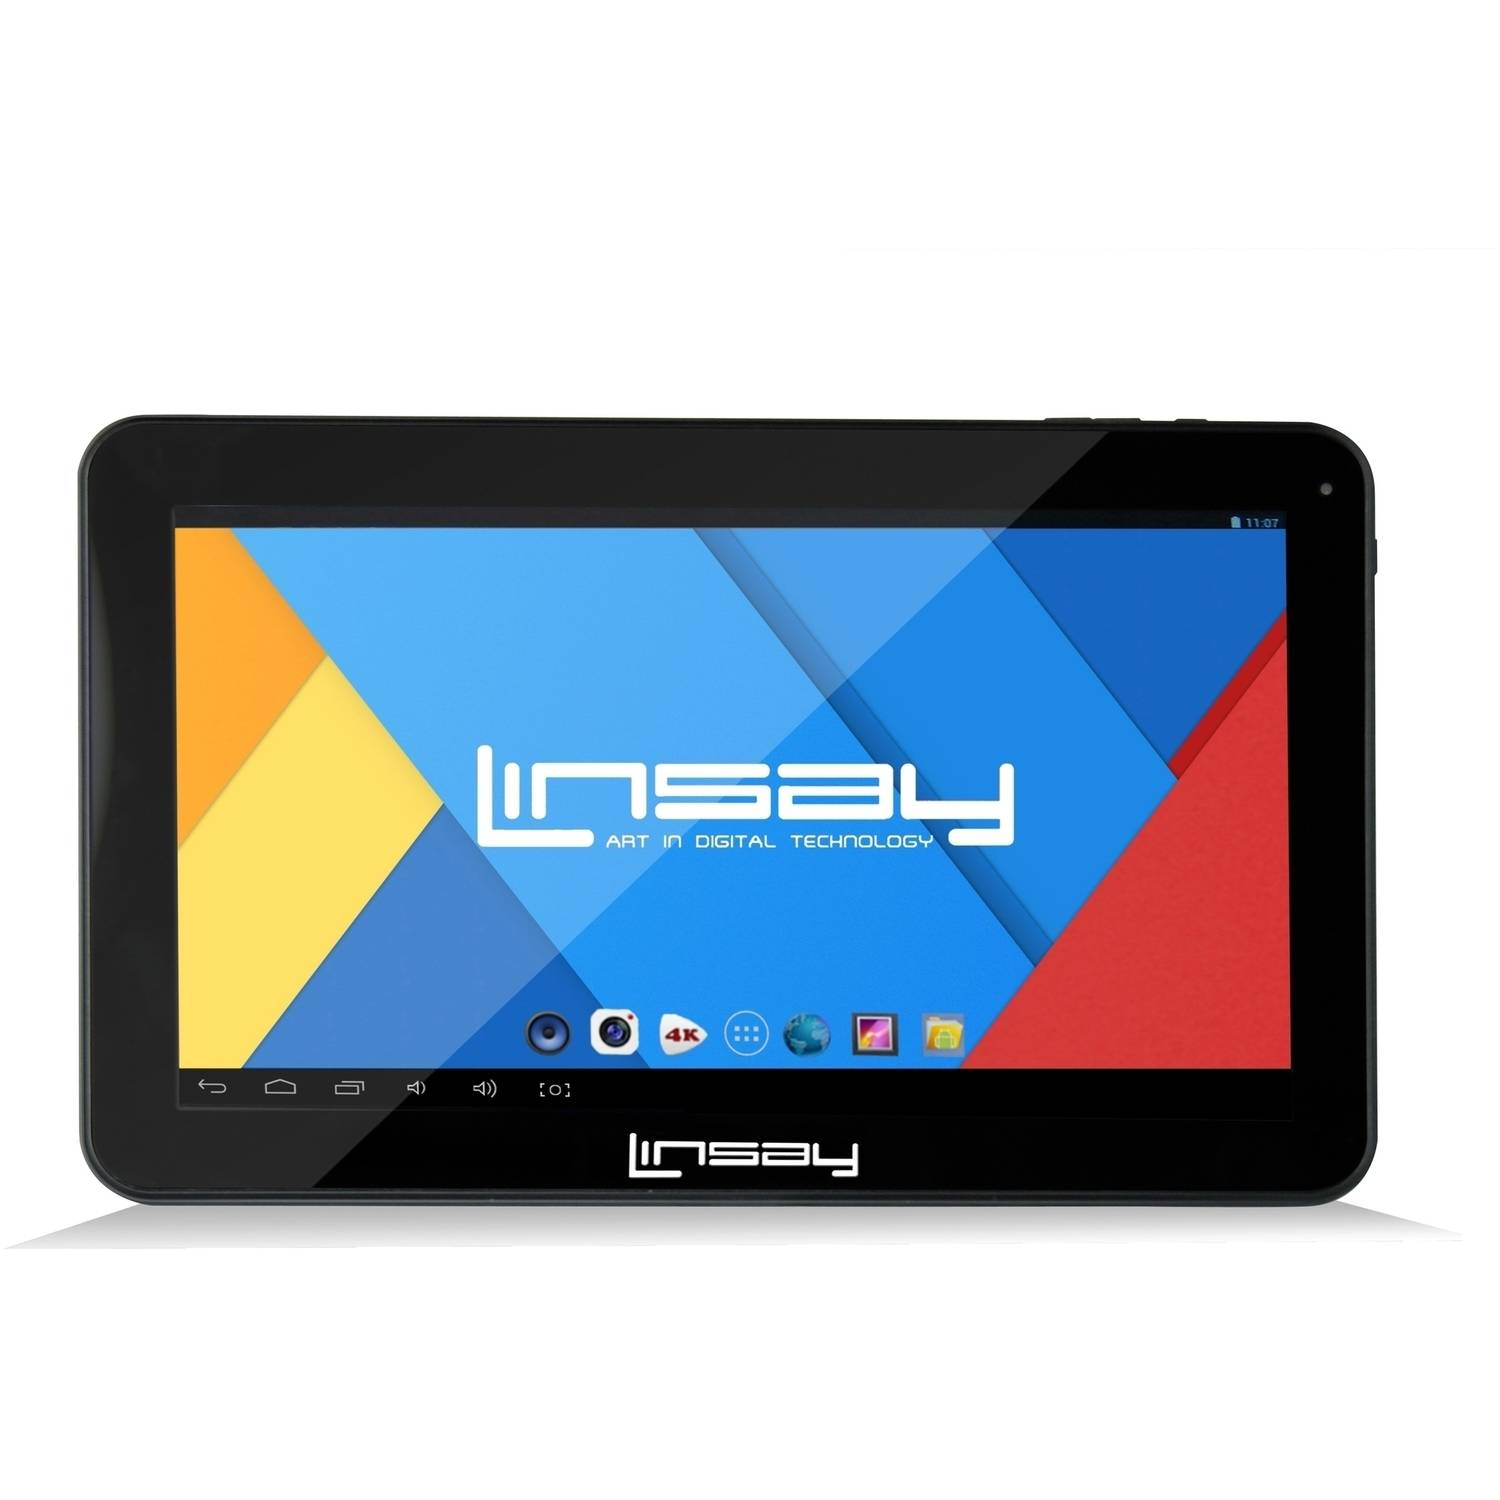 "LINSAY 10.1"" Touchscreen Quad-Core 8GB Tablet PC Featuring Android 4.4 (KitKat) Operating System"